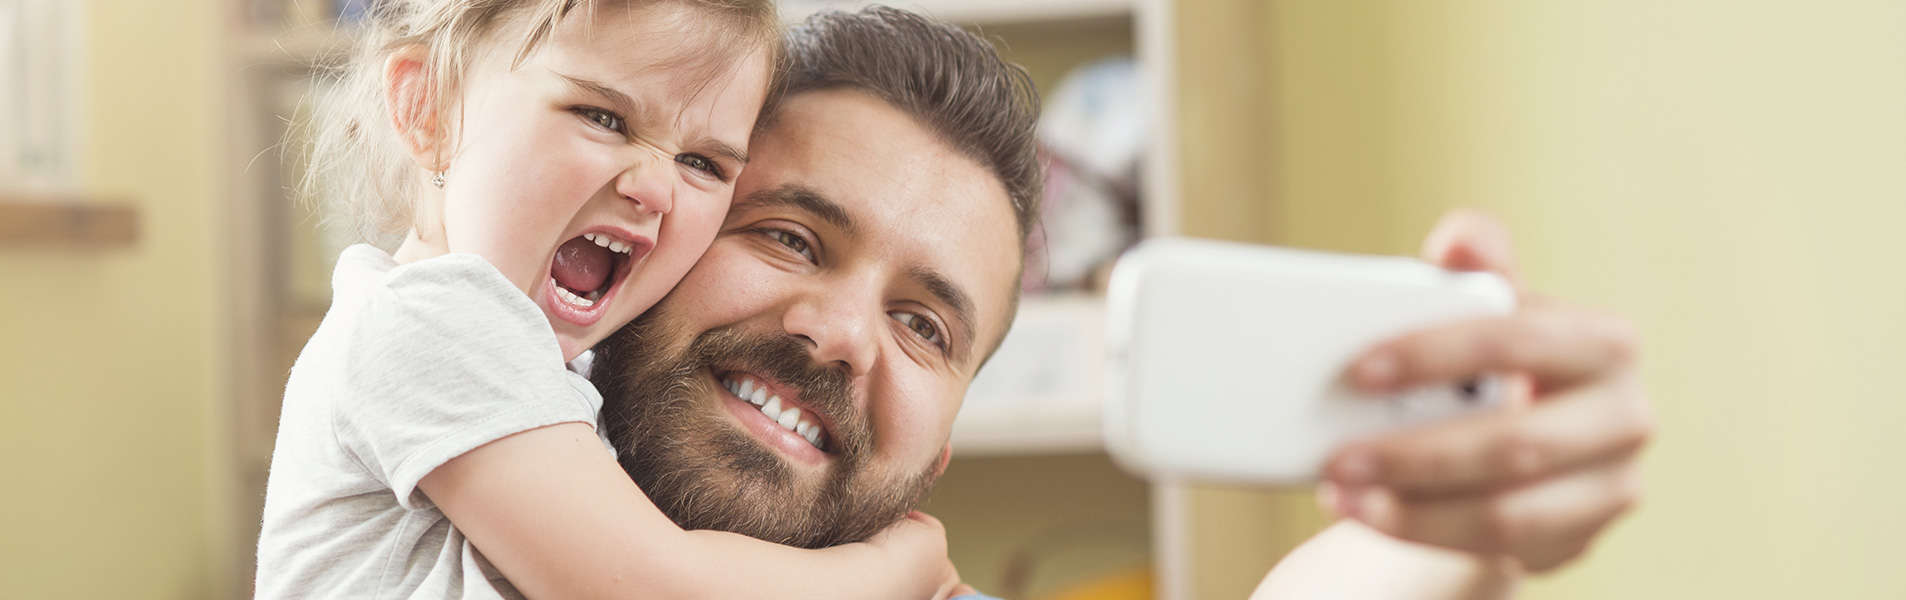 Angeles Mannies Nanny Manny Mannies Mannies Checks Domestic Staffing Professional male nannies find a family nannies and domestic staff male nanny agency become a manny celebrity staffing